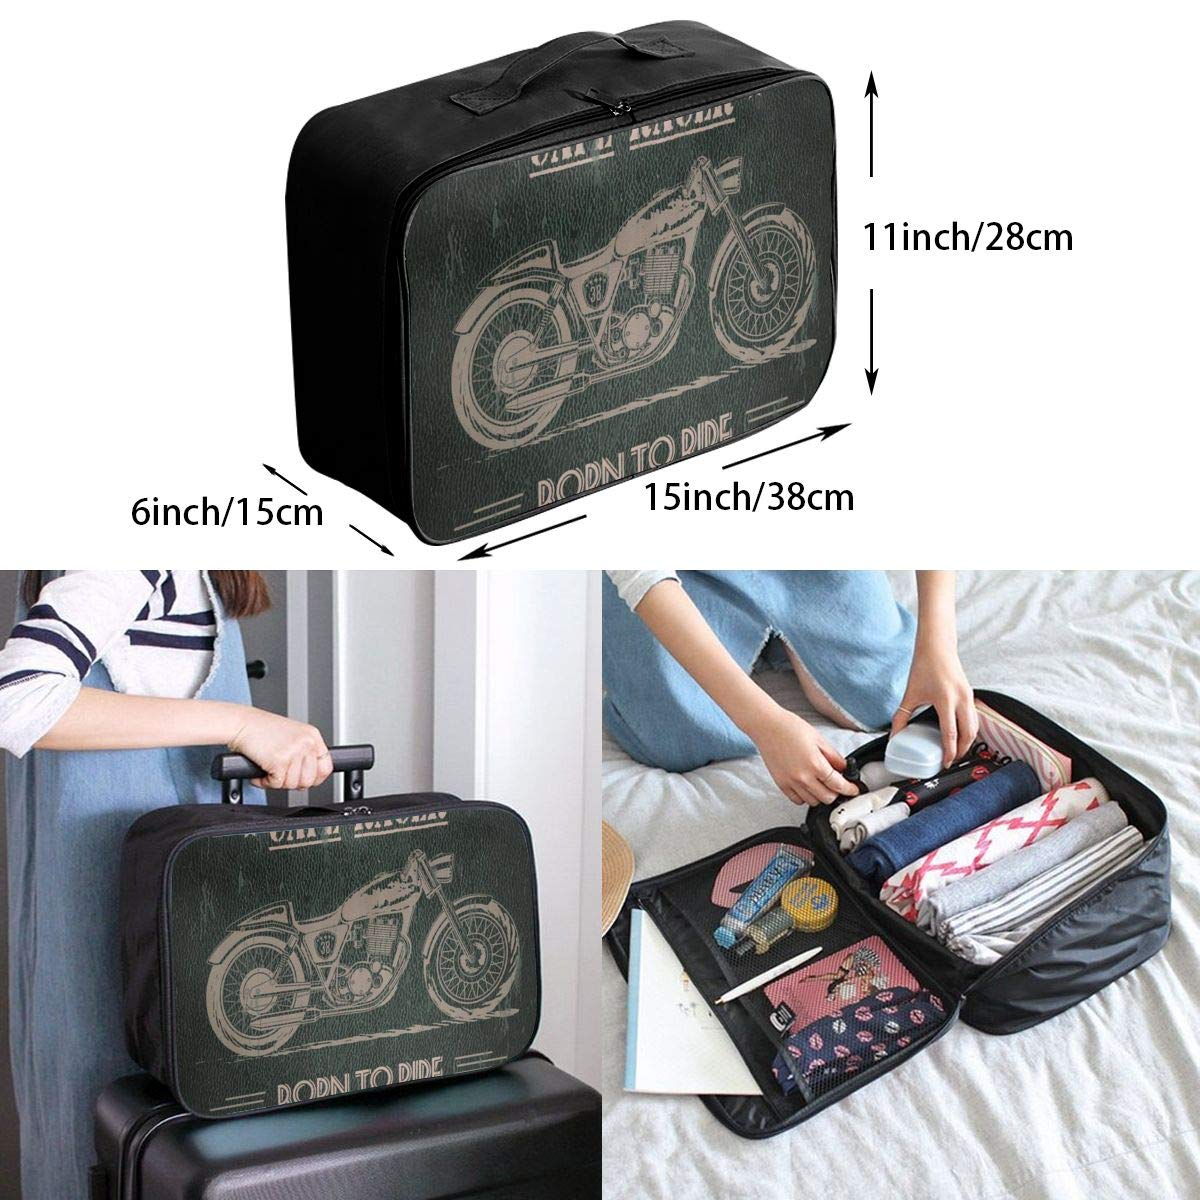 Motorcycle Cafe Racer Born To Die Travel Lightweight Waterproof Foldable Storage Carry Luggage Duffle Tote Bag Large Capacity In Trolley Handle Bags 6x11x15 Inch